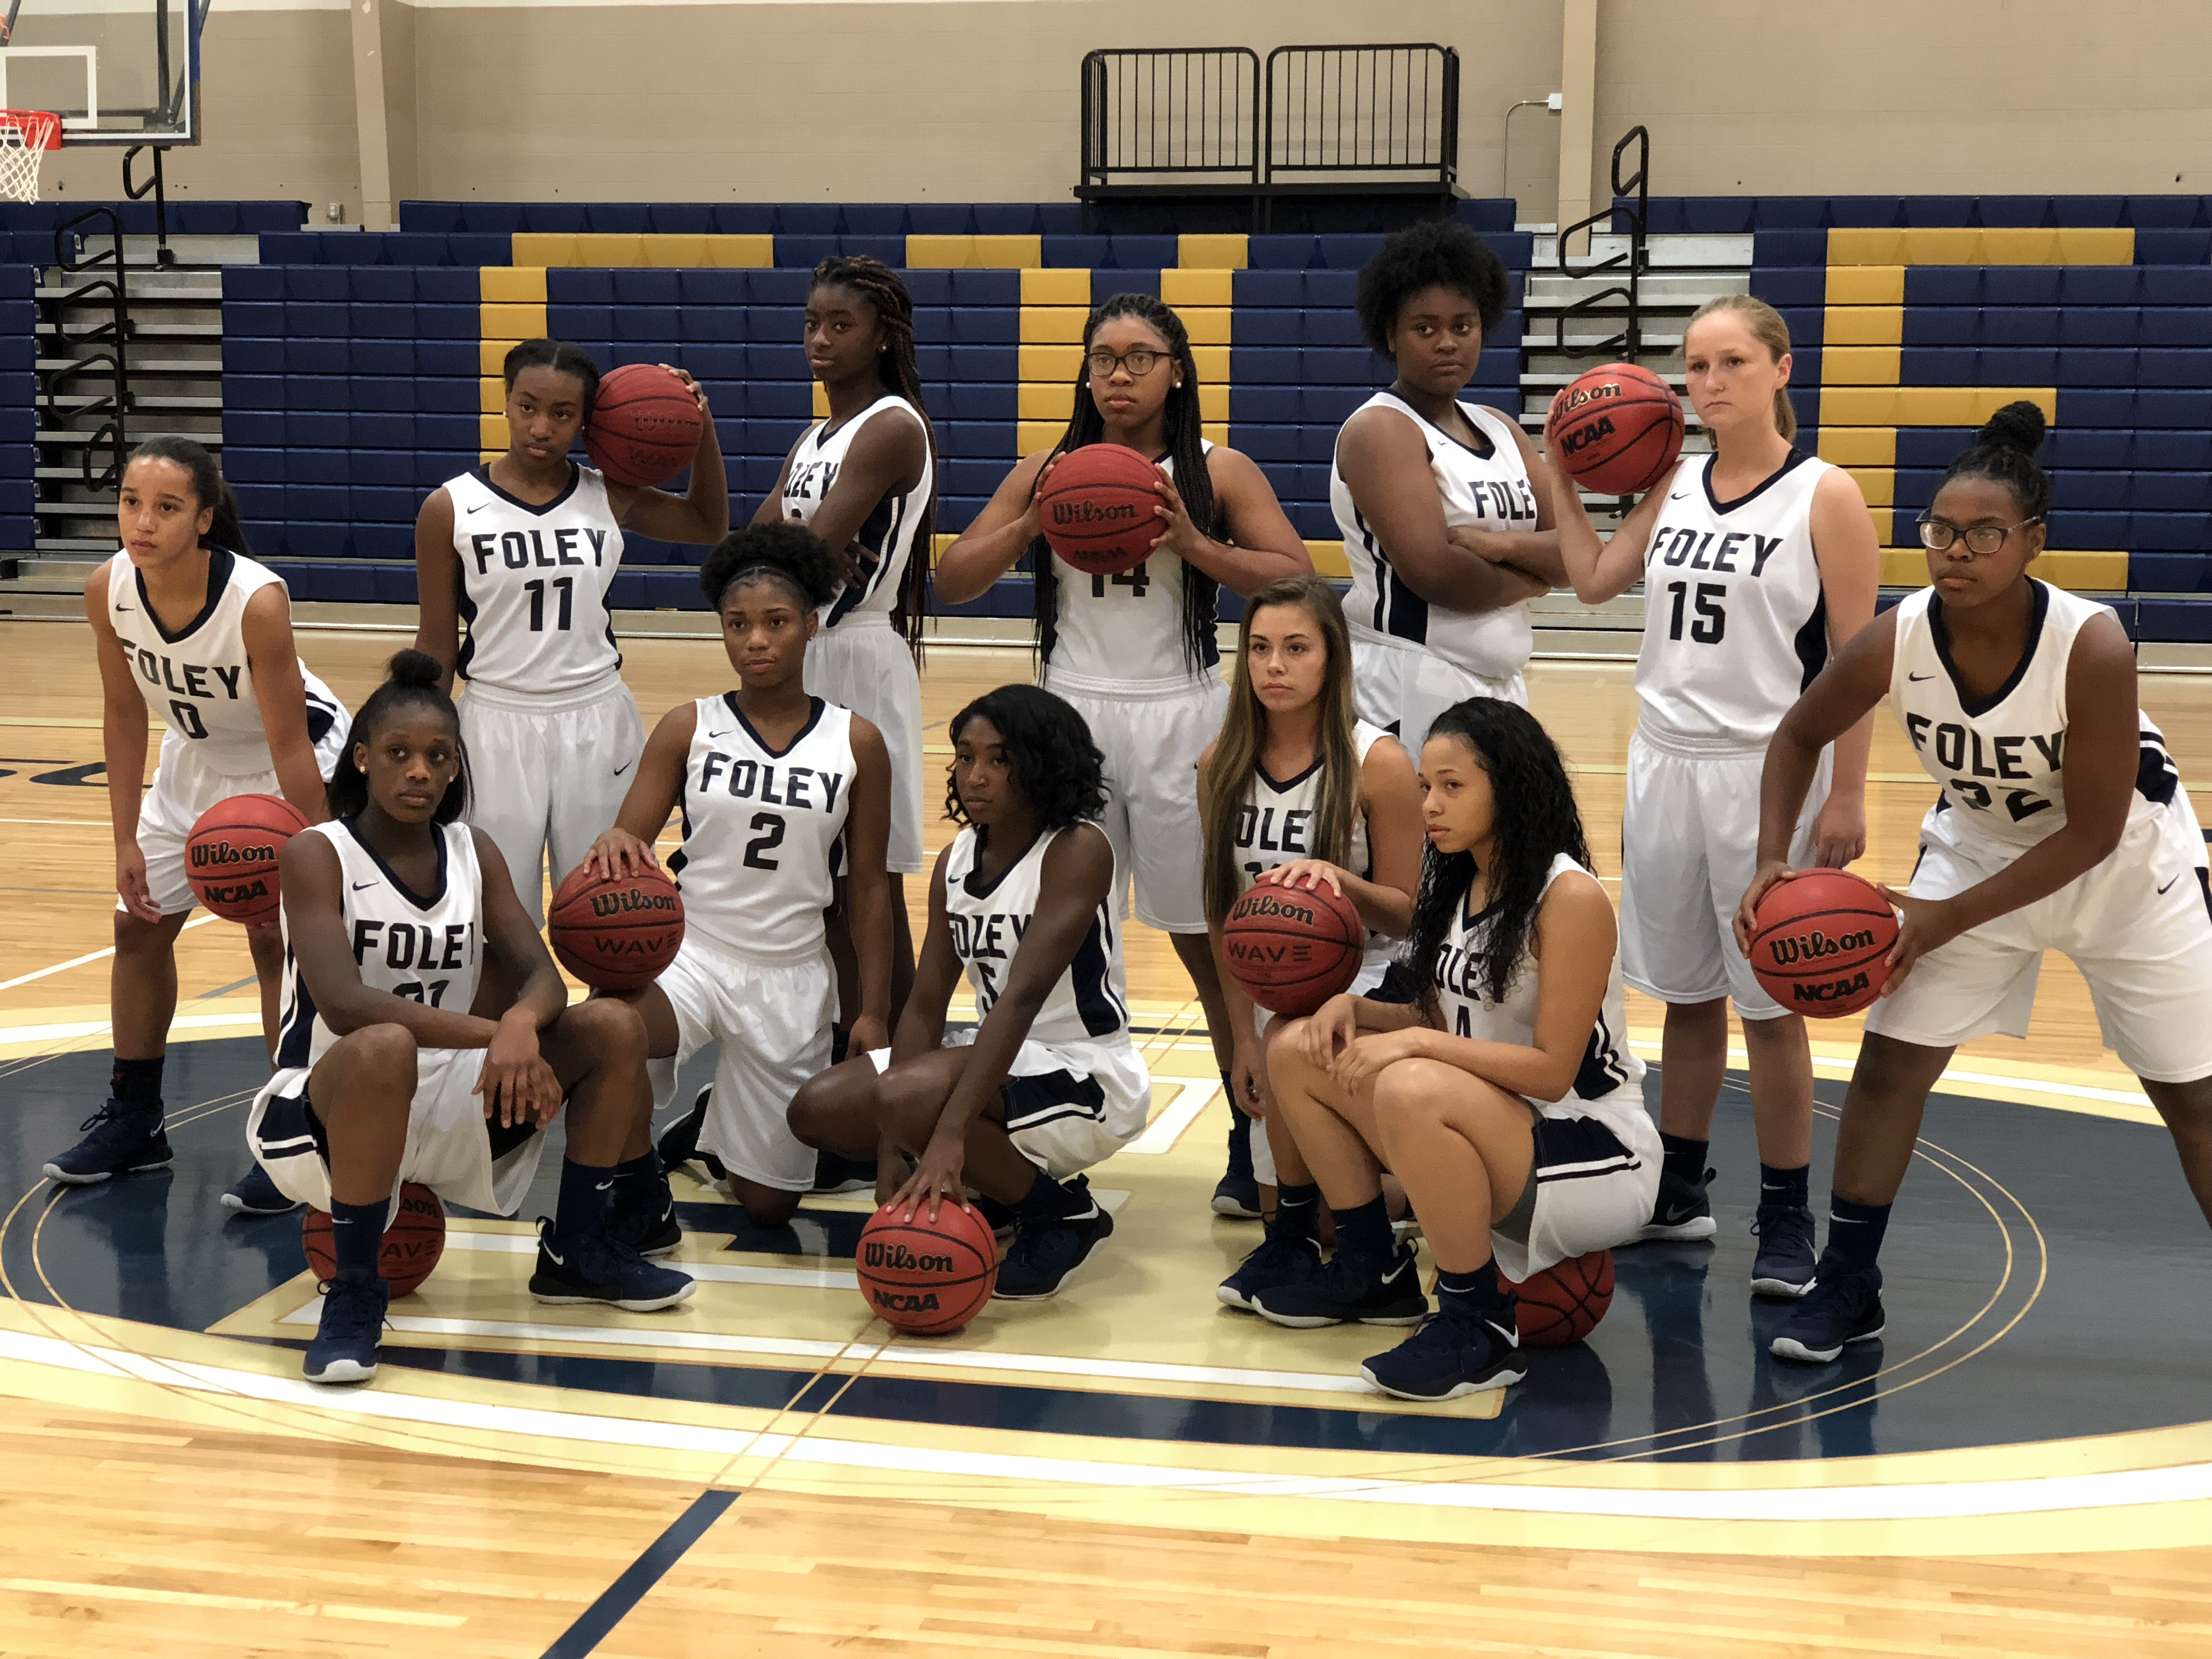 Girls basketball ranked #10 in latest polls